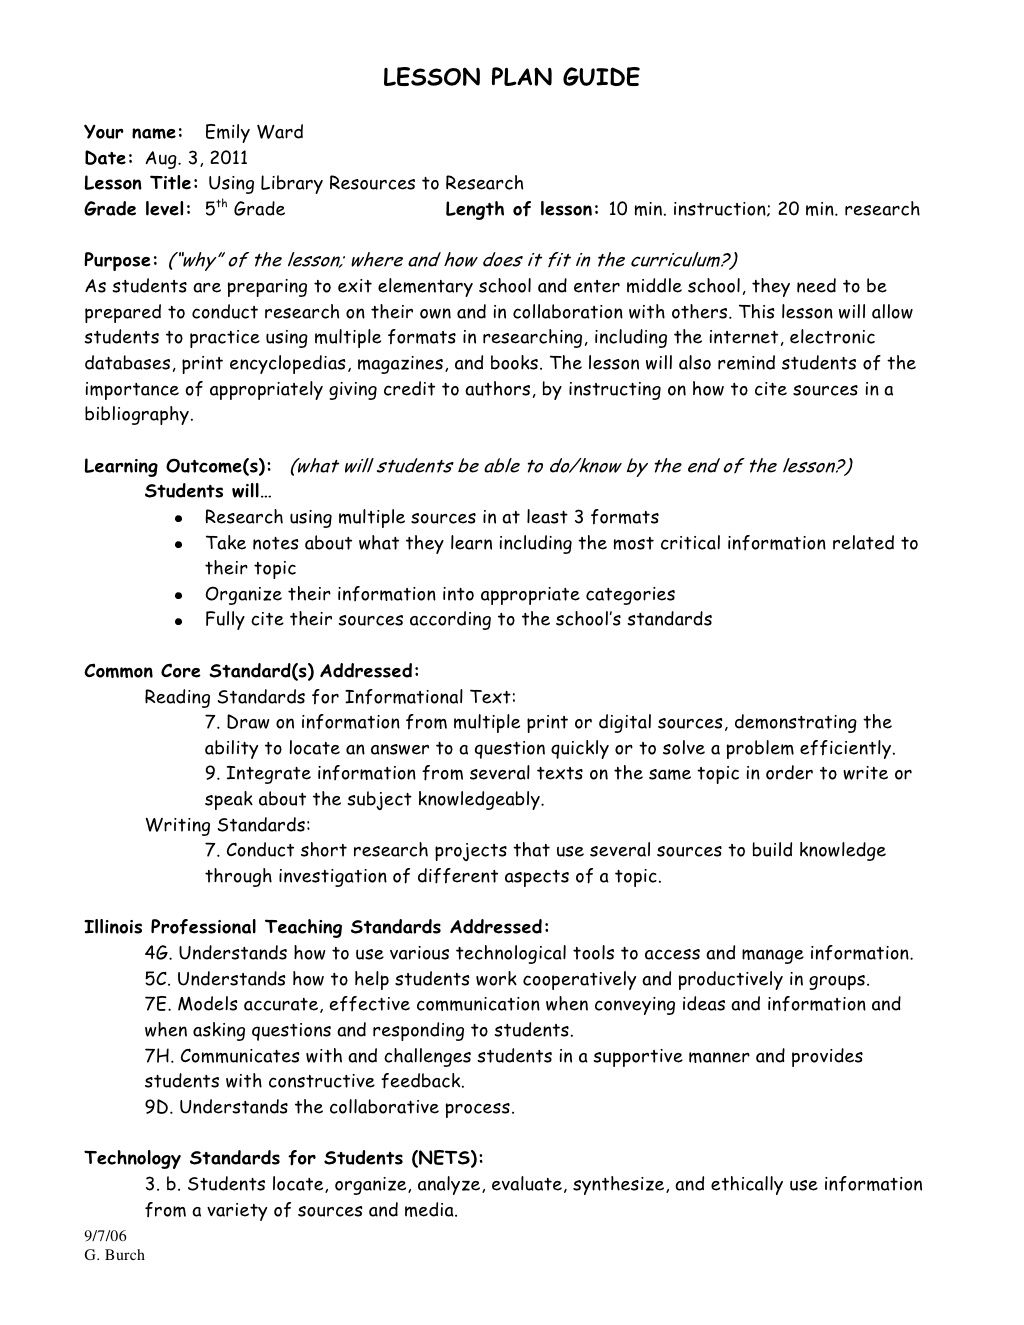 Research Project Lesson Plan Research Projects How To Plan Descriptive Writing